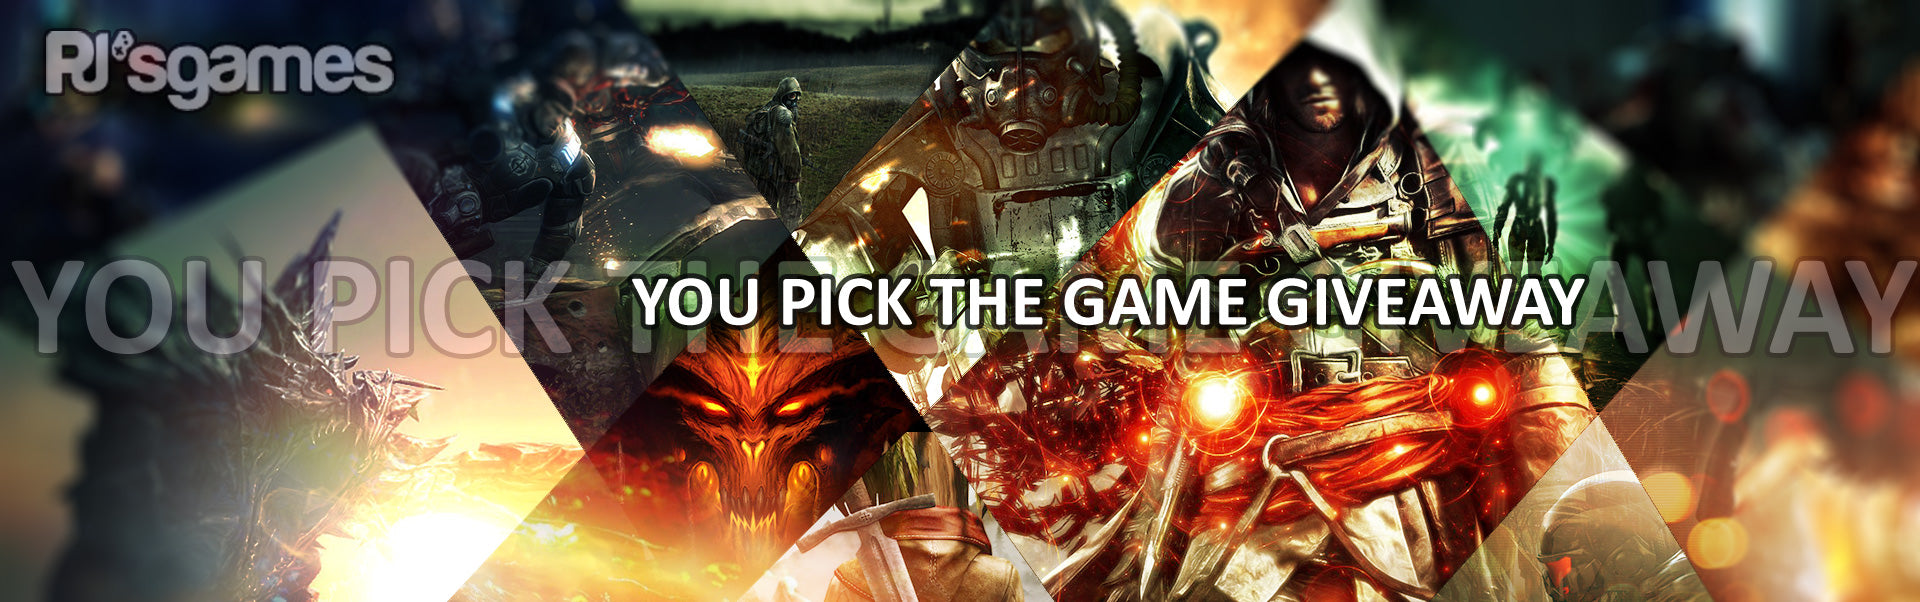 "PJ's Games ""You Pick The Game"" Giveaway"